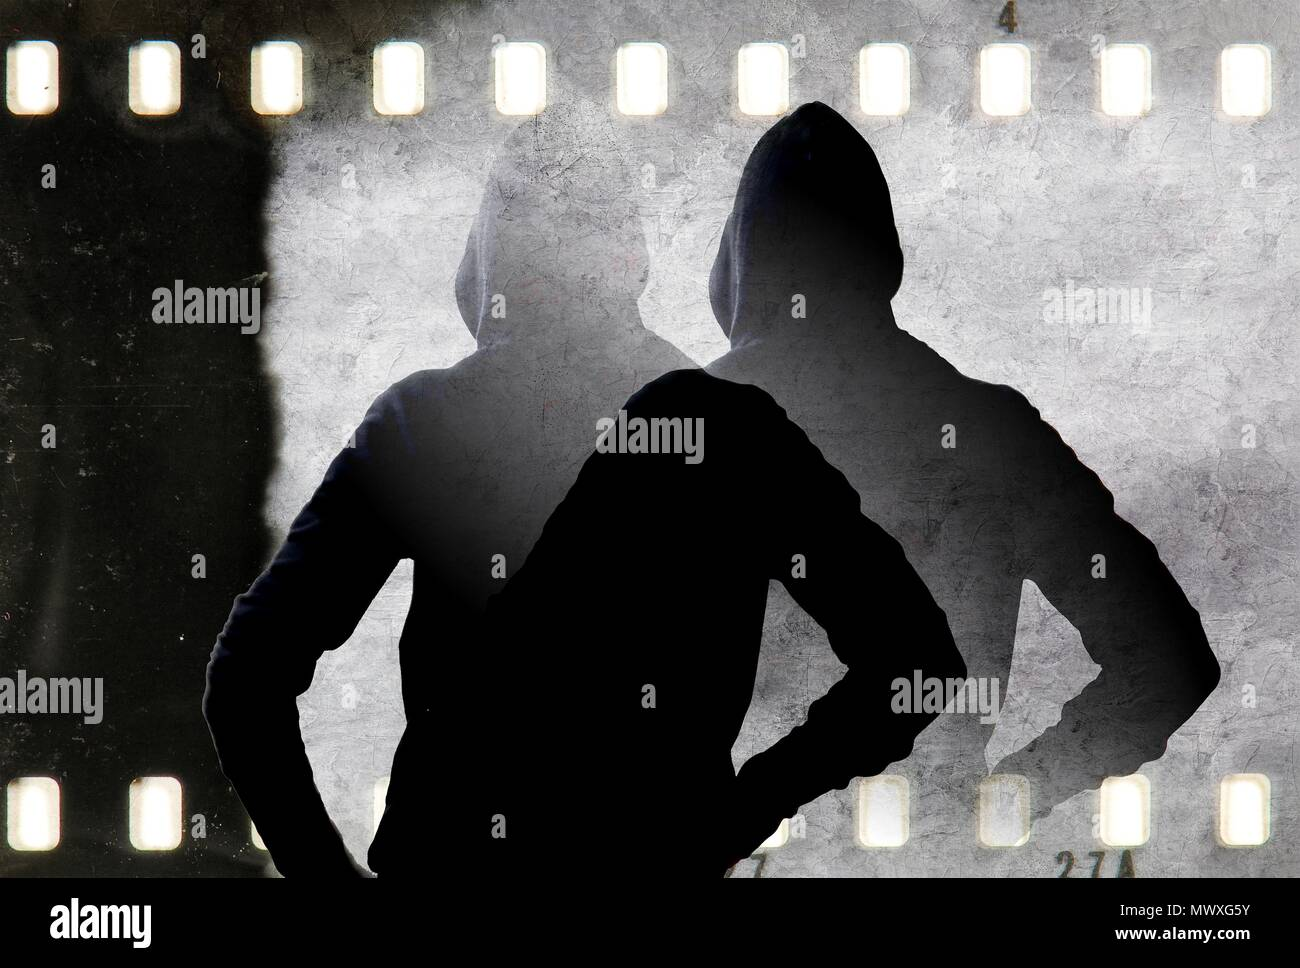 Vintage black and white doubled silhouette of young man with hooded sweatshirt and film strip frame. - Stock Image